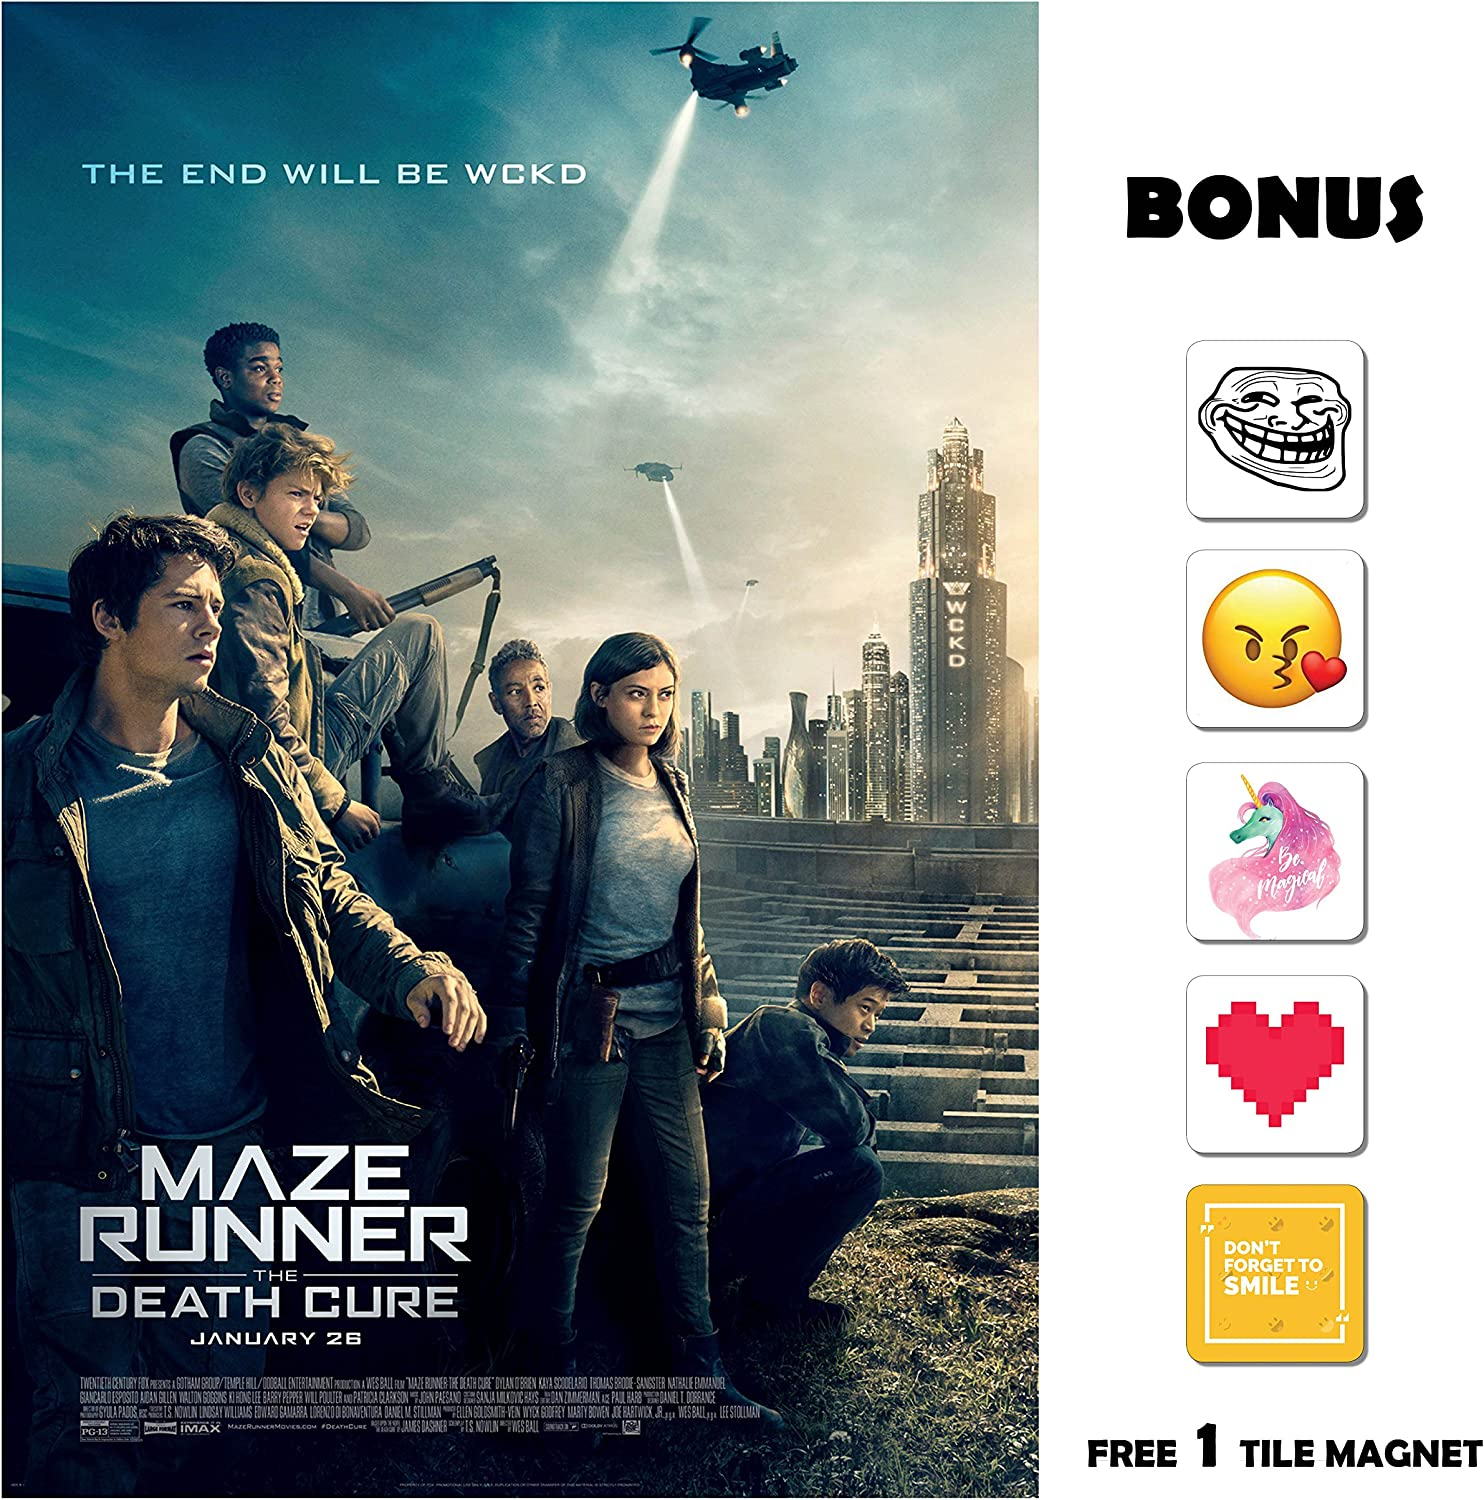 Amazon Com Movie Poster Maze Runner The Death Cure 2018 Wckd 13 In X 19 In Flyer Borderless Free 1 Tile Magnet Posters Prints